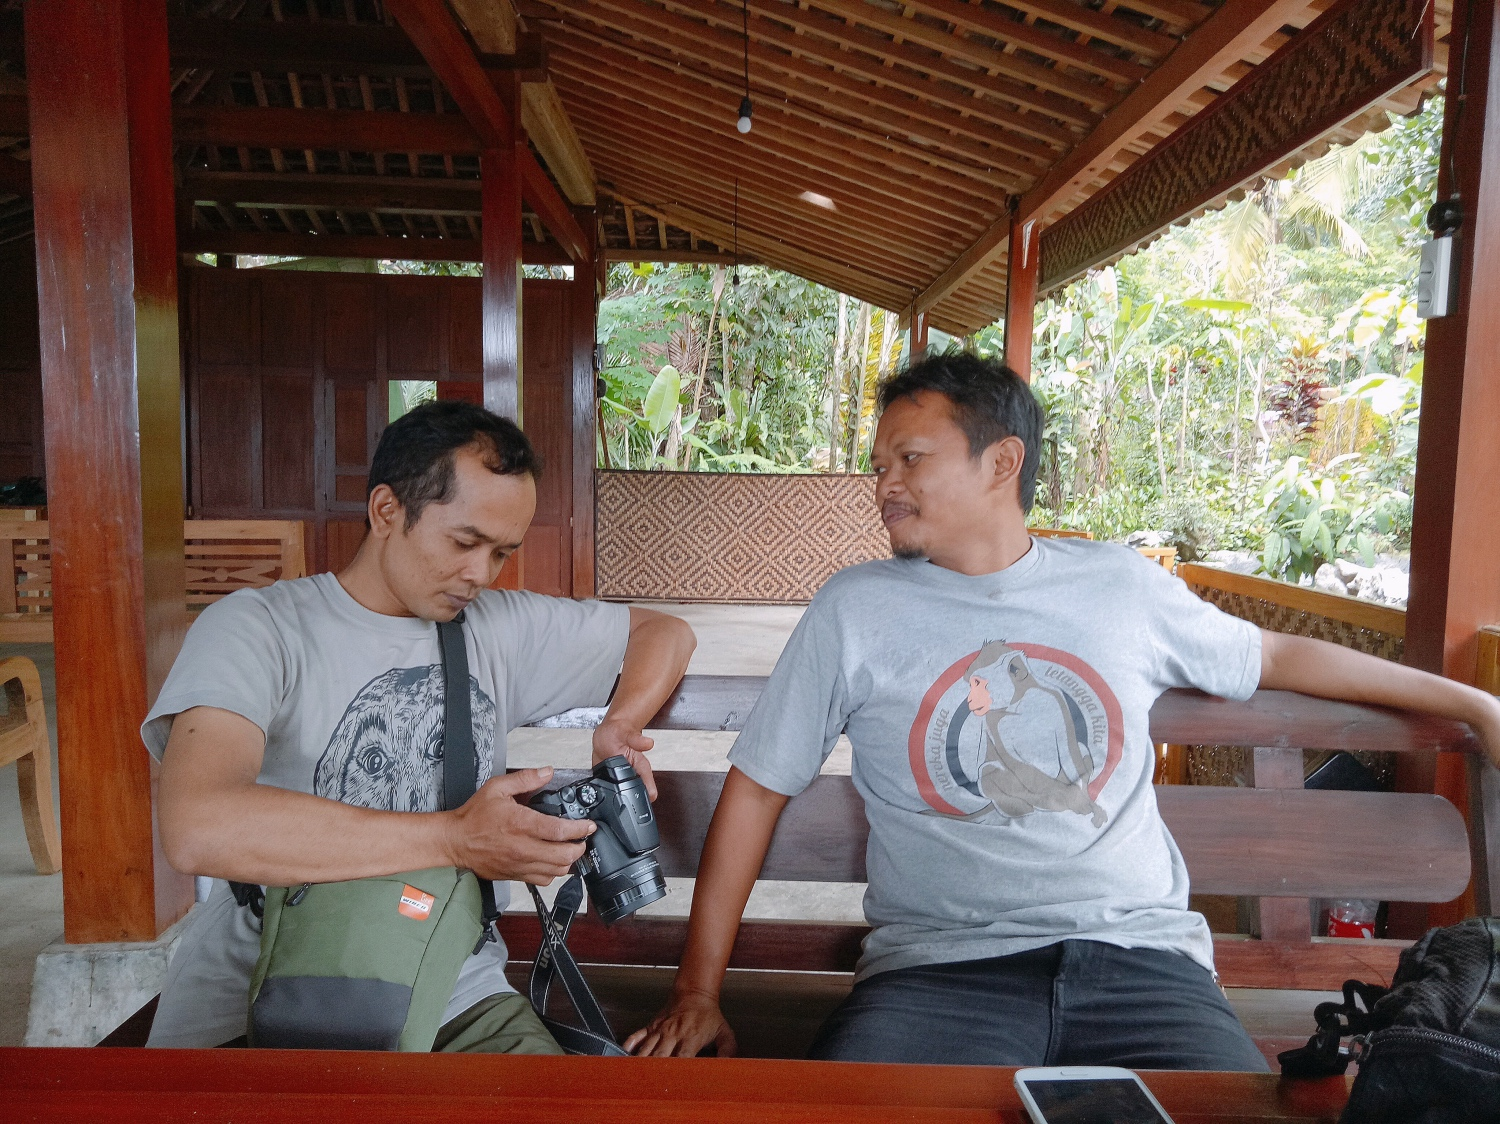 Suparno (left) and Arif take a break and review photographs of Jatimulyo's birds.